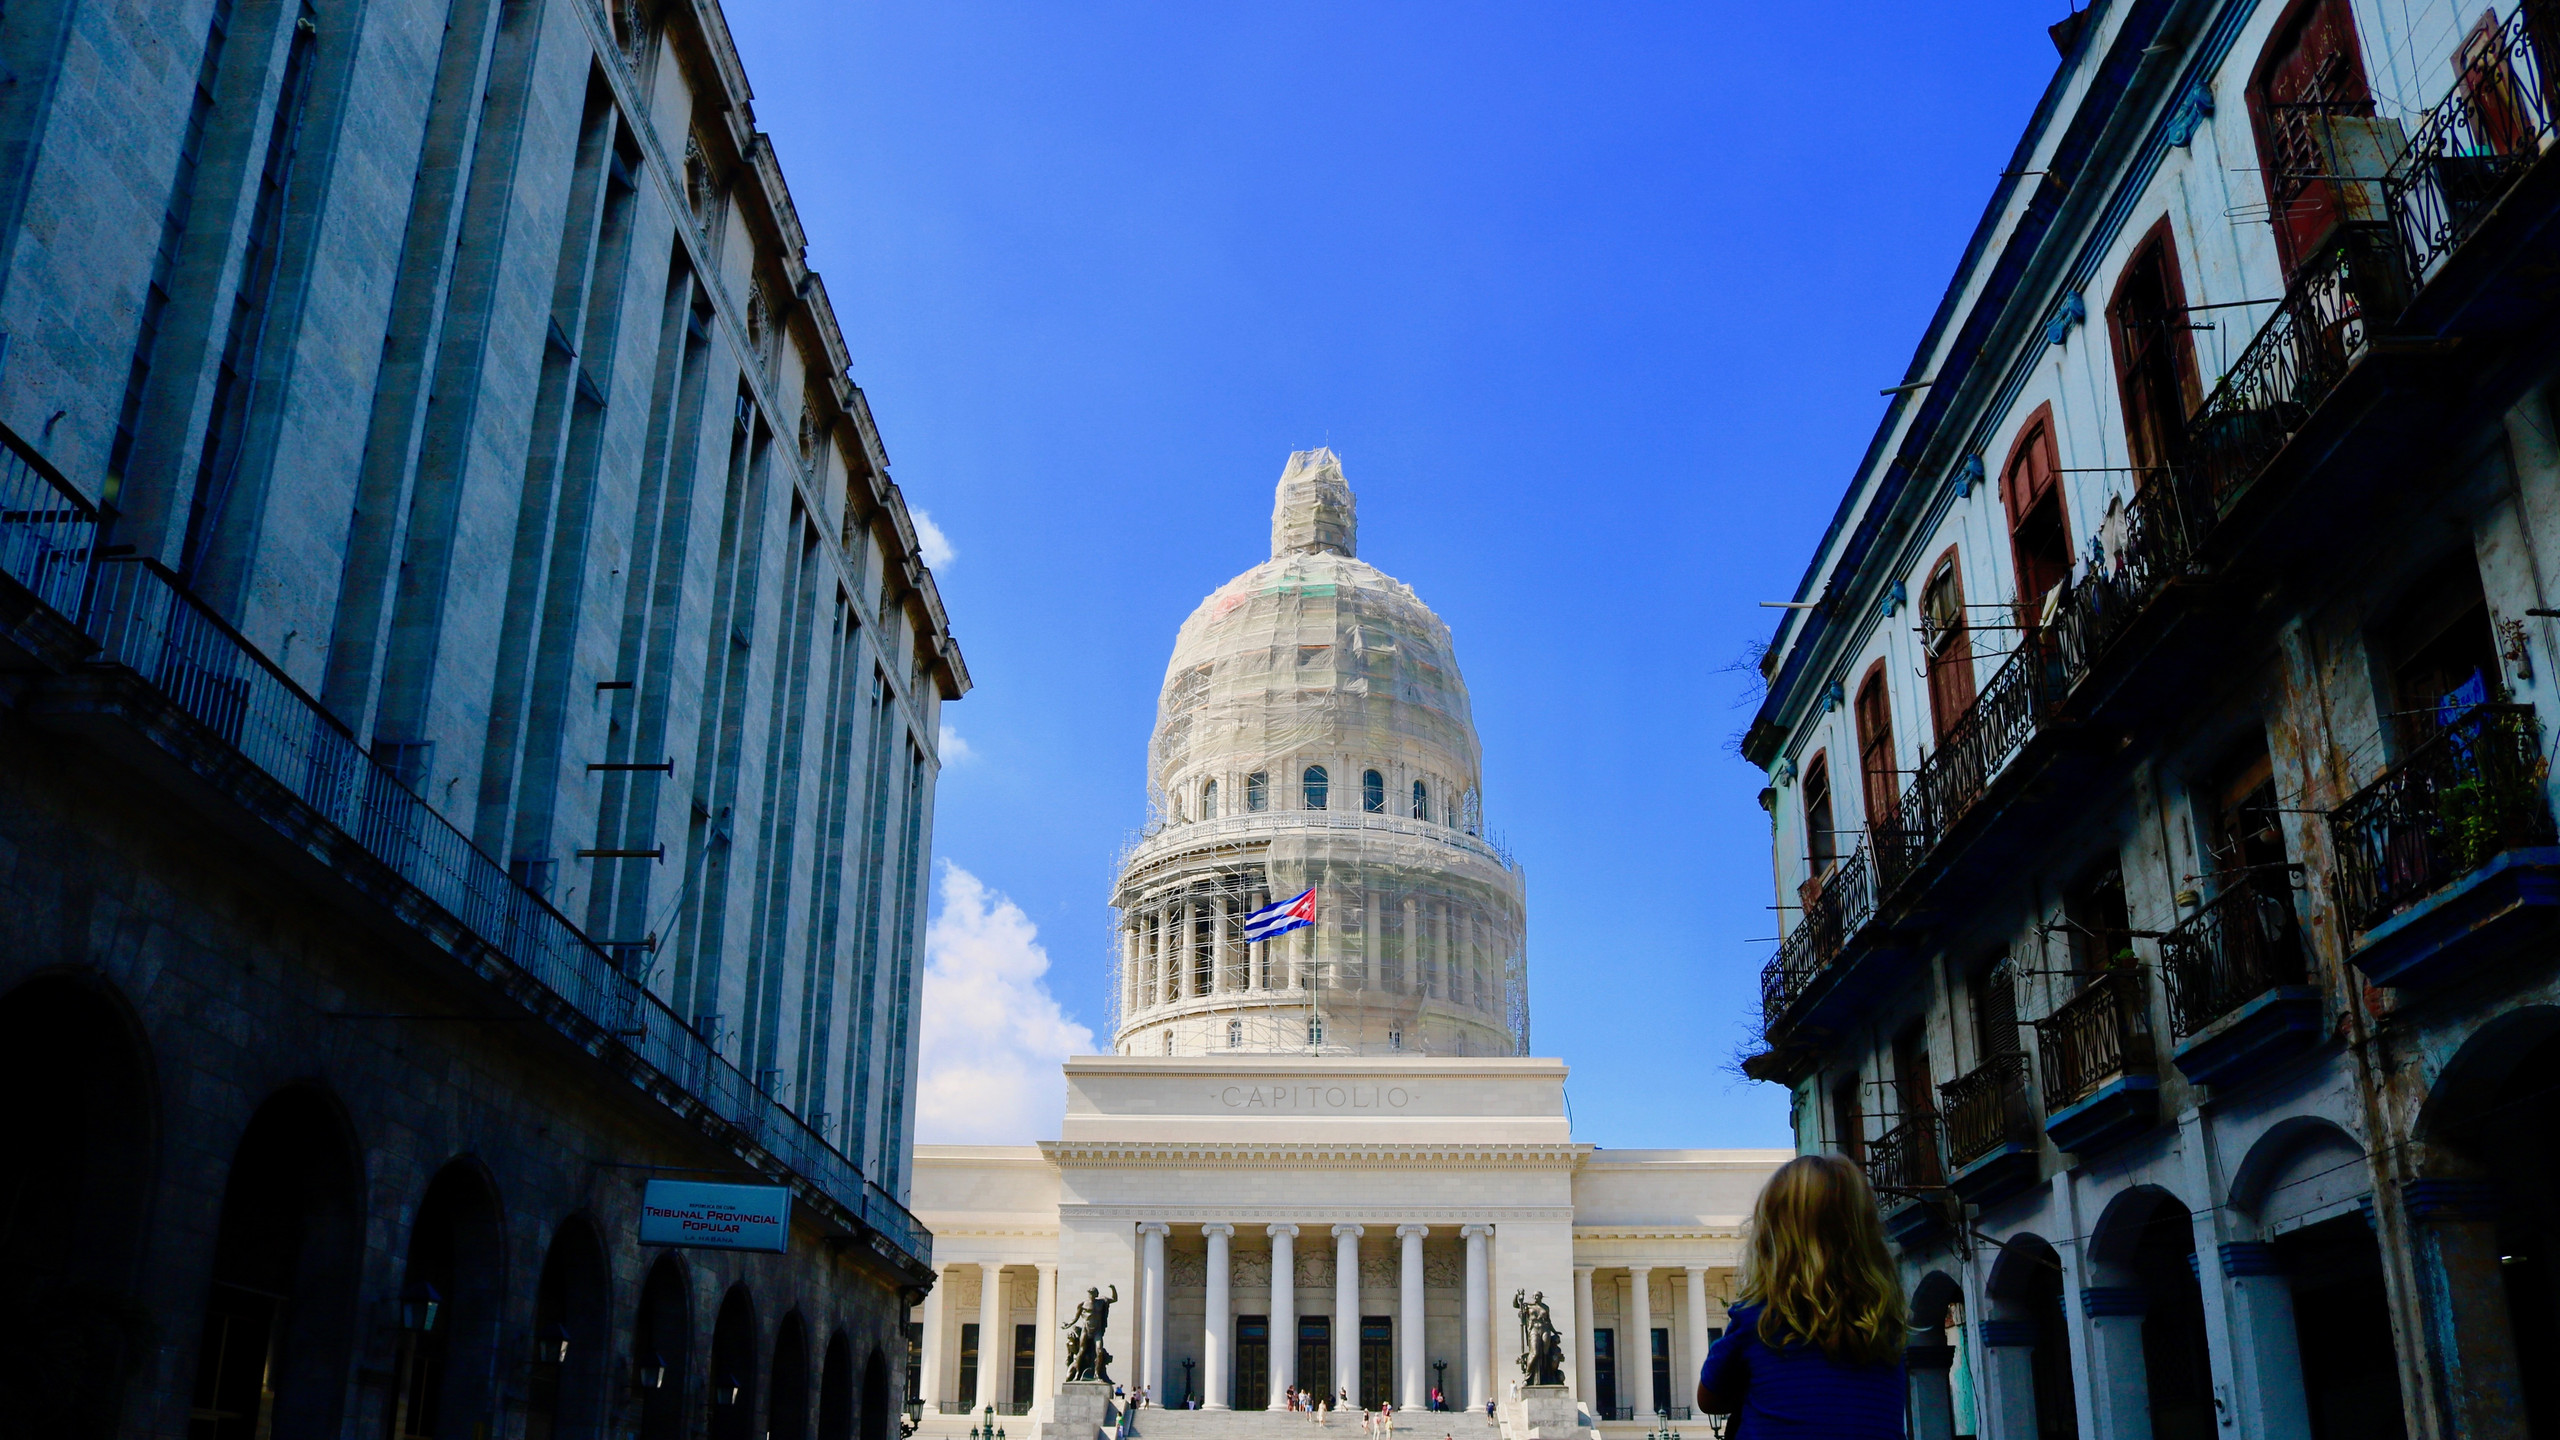 El Capitolo in Havana with the Cuban flag flying in front of it.